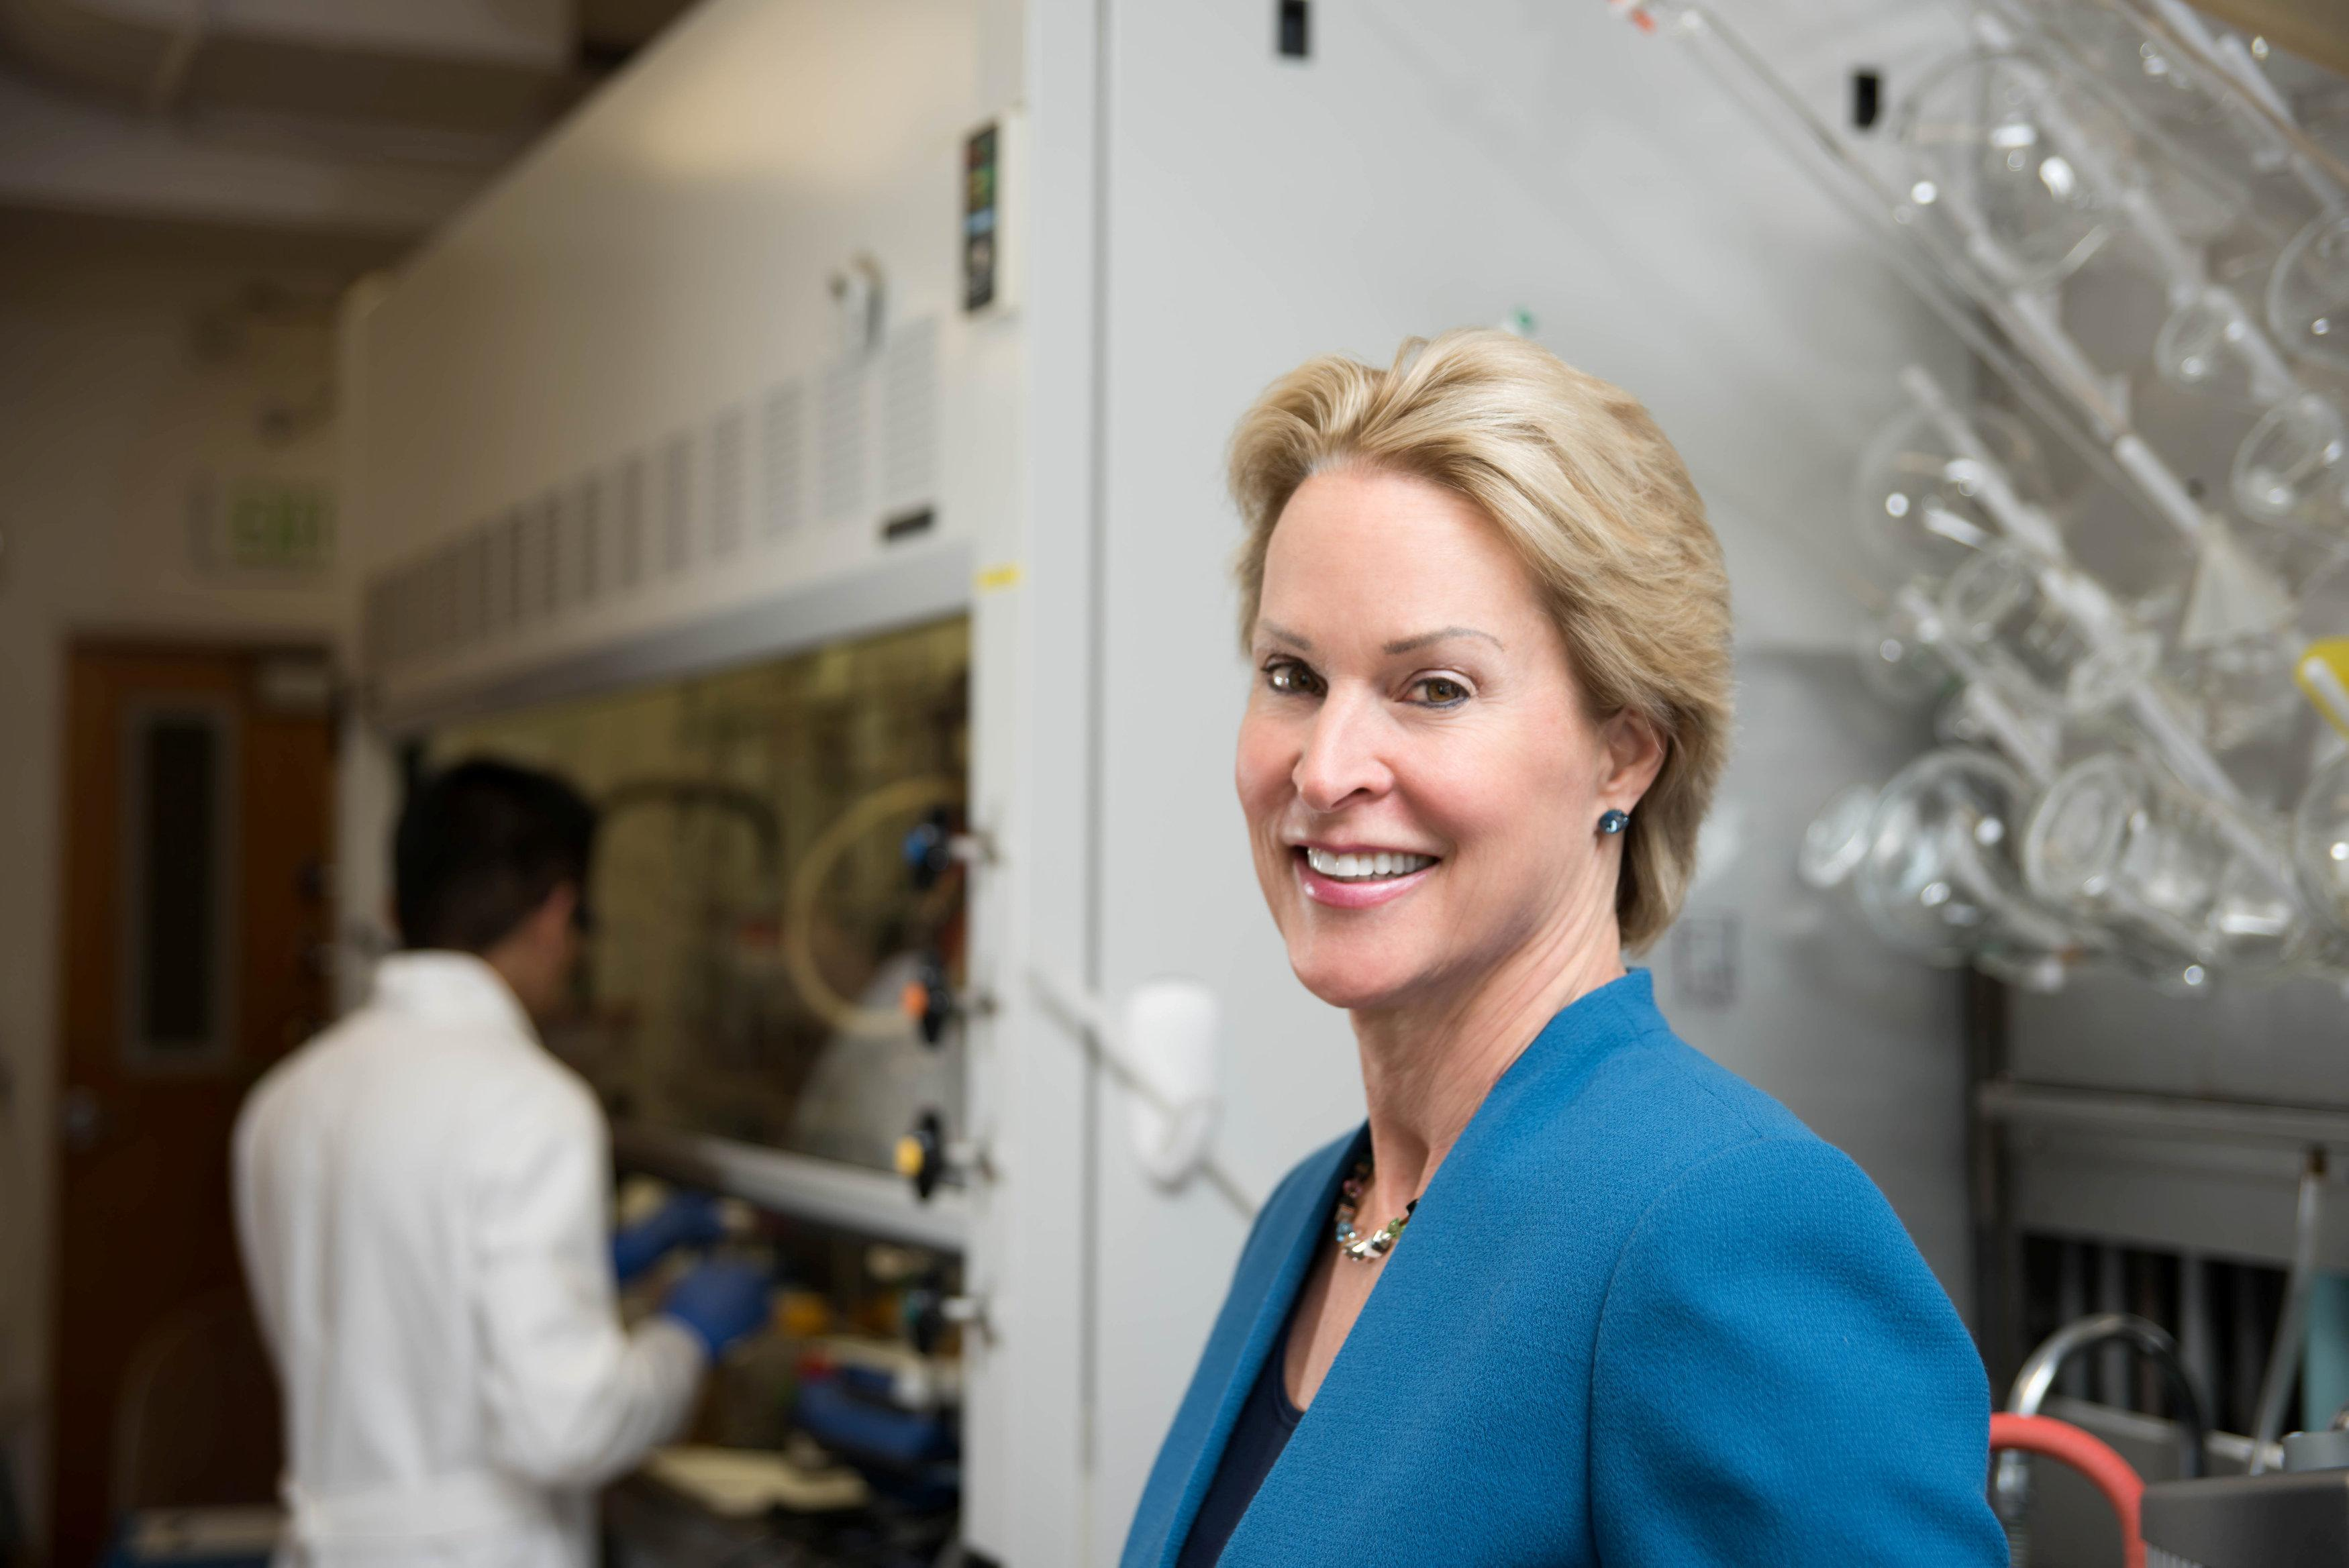 Frances Arnold of the California Institute of Technology (CalTech), a winner of the 2018 Nobel Prize for Chemistry, poses in a laboratory in an undated photo provided to Reuters by Caltech October 3, 2018. California Institute of Technology/Handout via